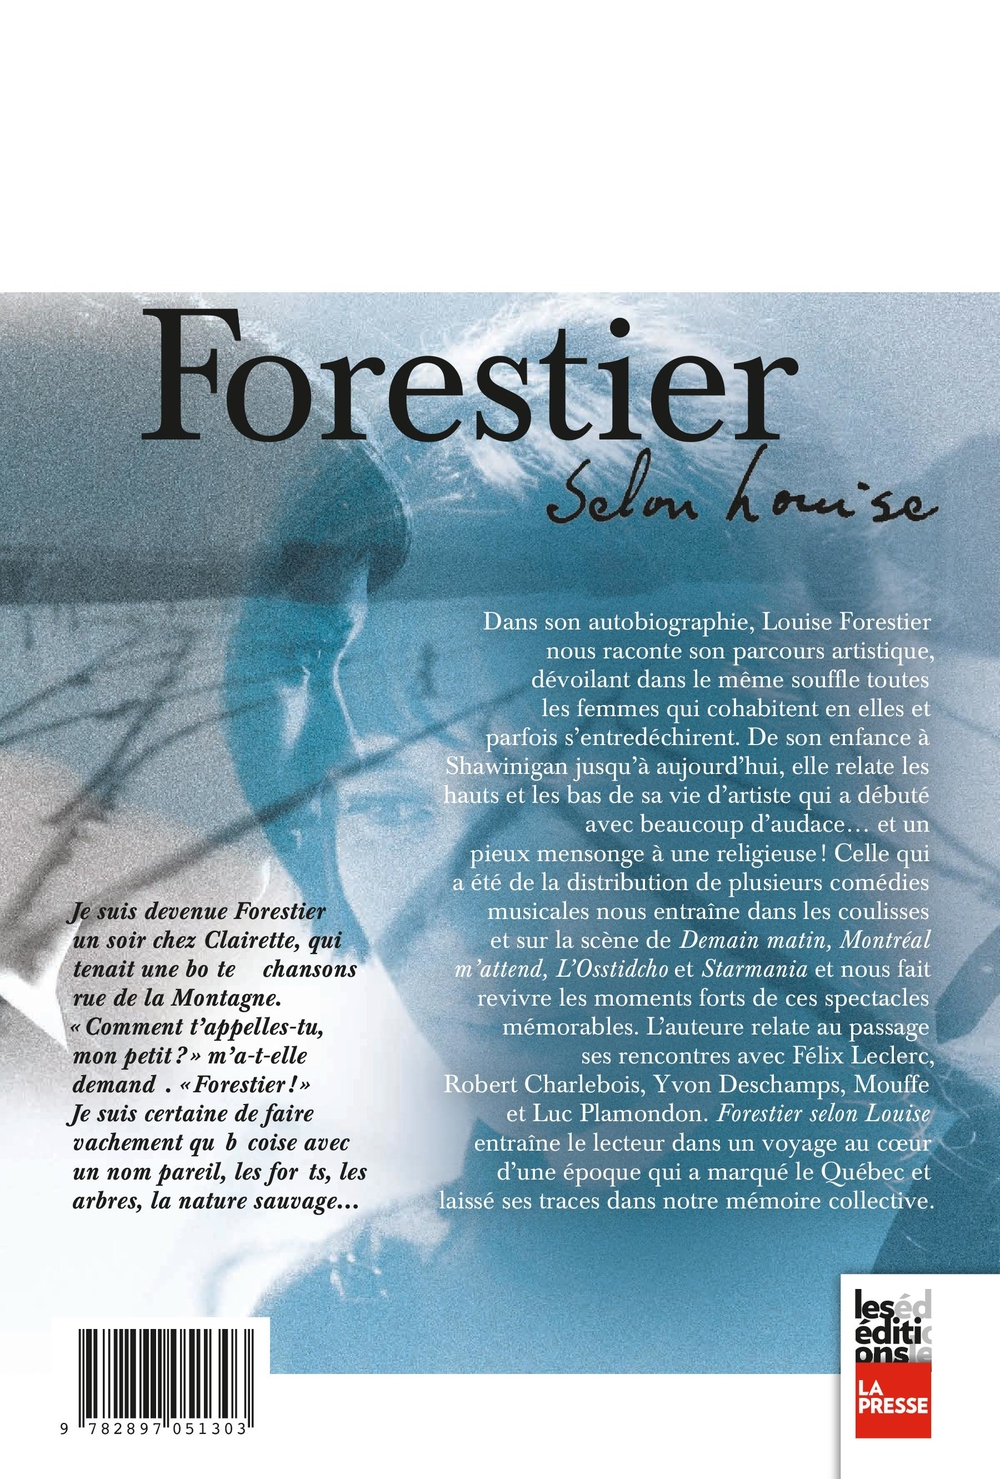 Forestier selon Louise - Louise Forestier revers